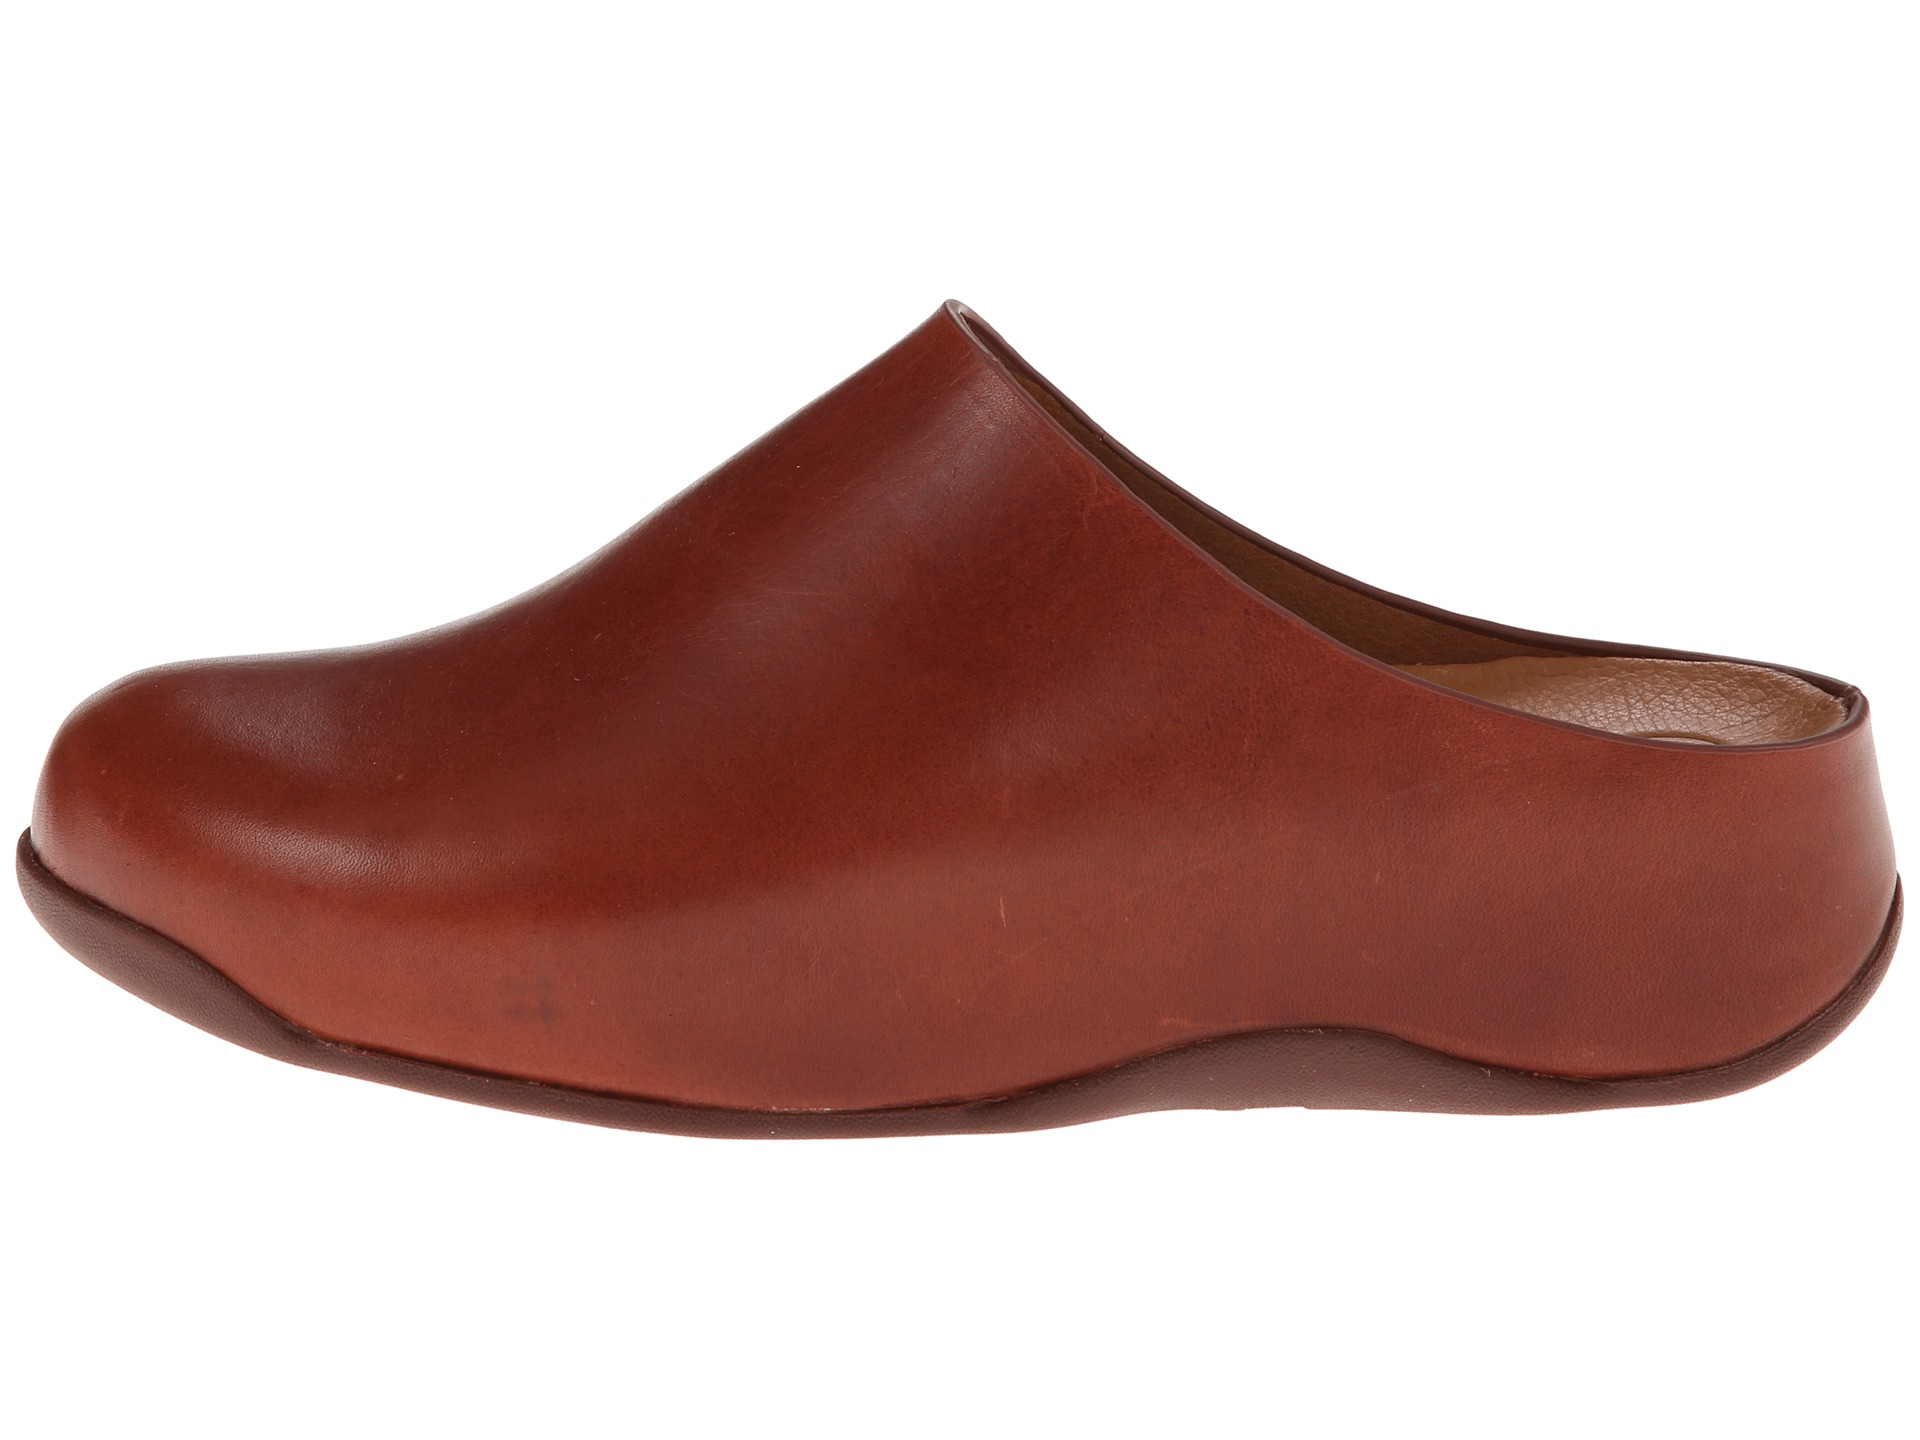 bed0e5ea44d Fitflop Shuv Leather Clog